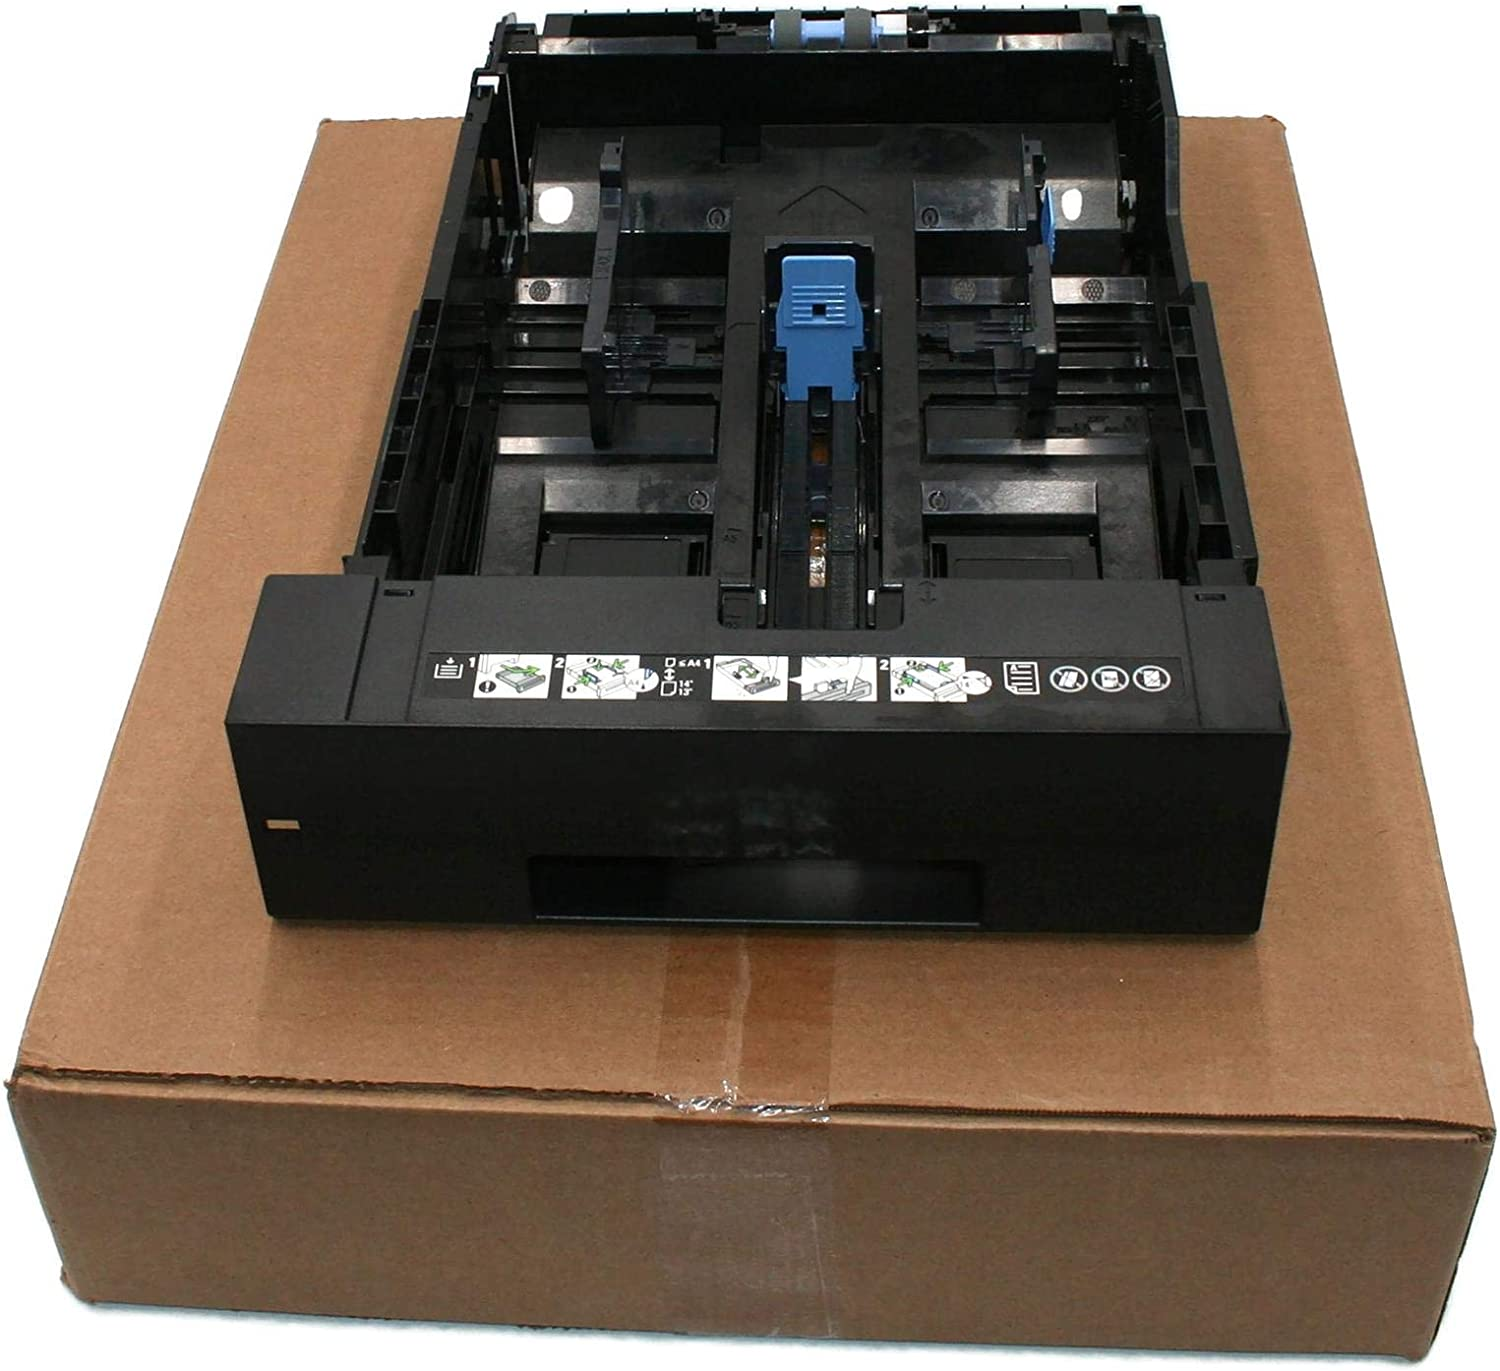 TM-toner Remanufactured 250 Sheets Paper Tray M9GJM Replacement for Dell C2660DN C2665DNF Printer